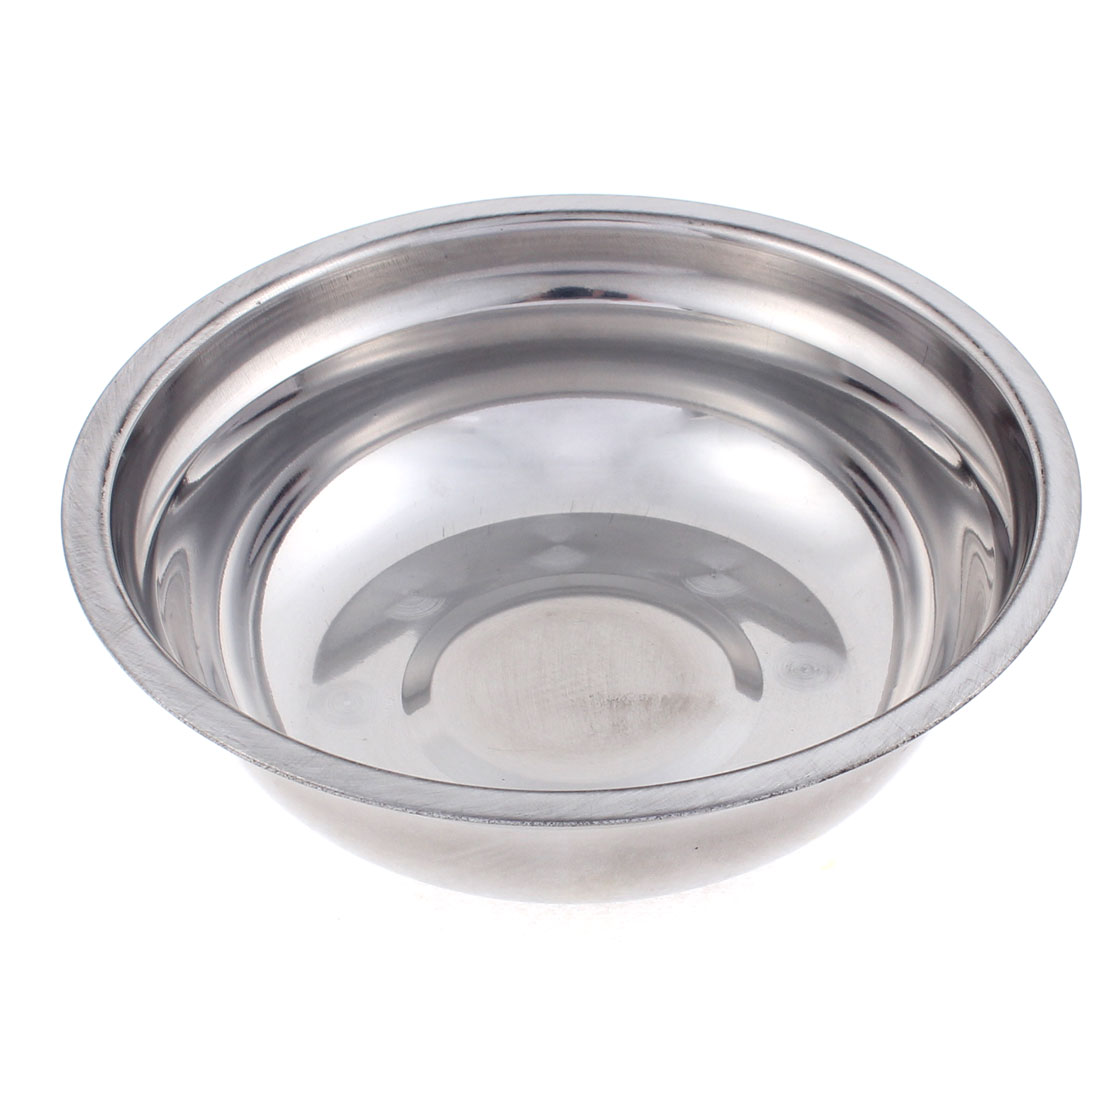 "Round Shape Stainless Steel Dinner Soup Bowl 6"" Diameter"